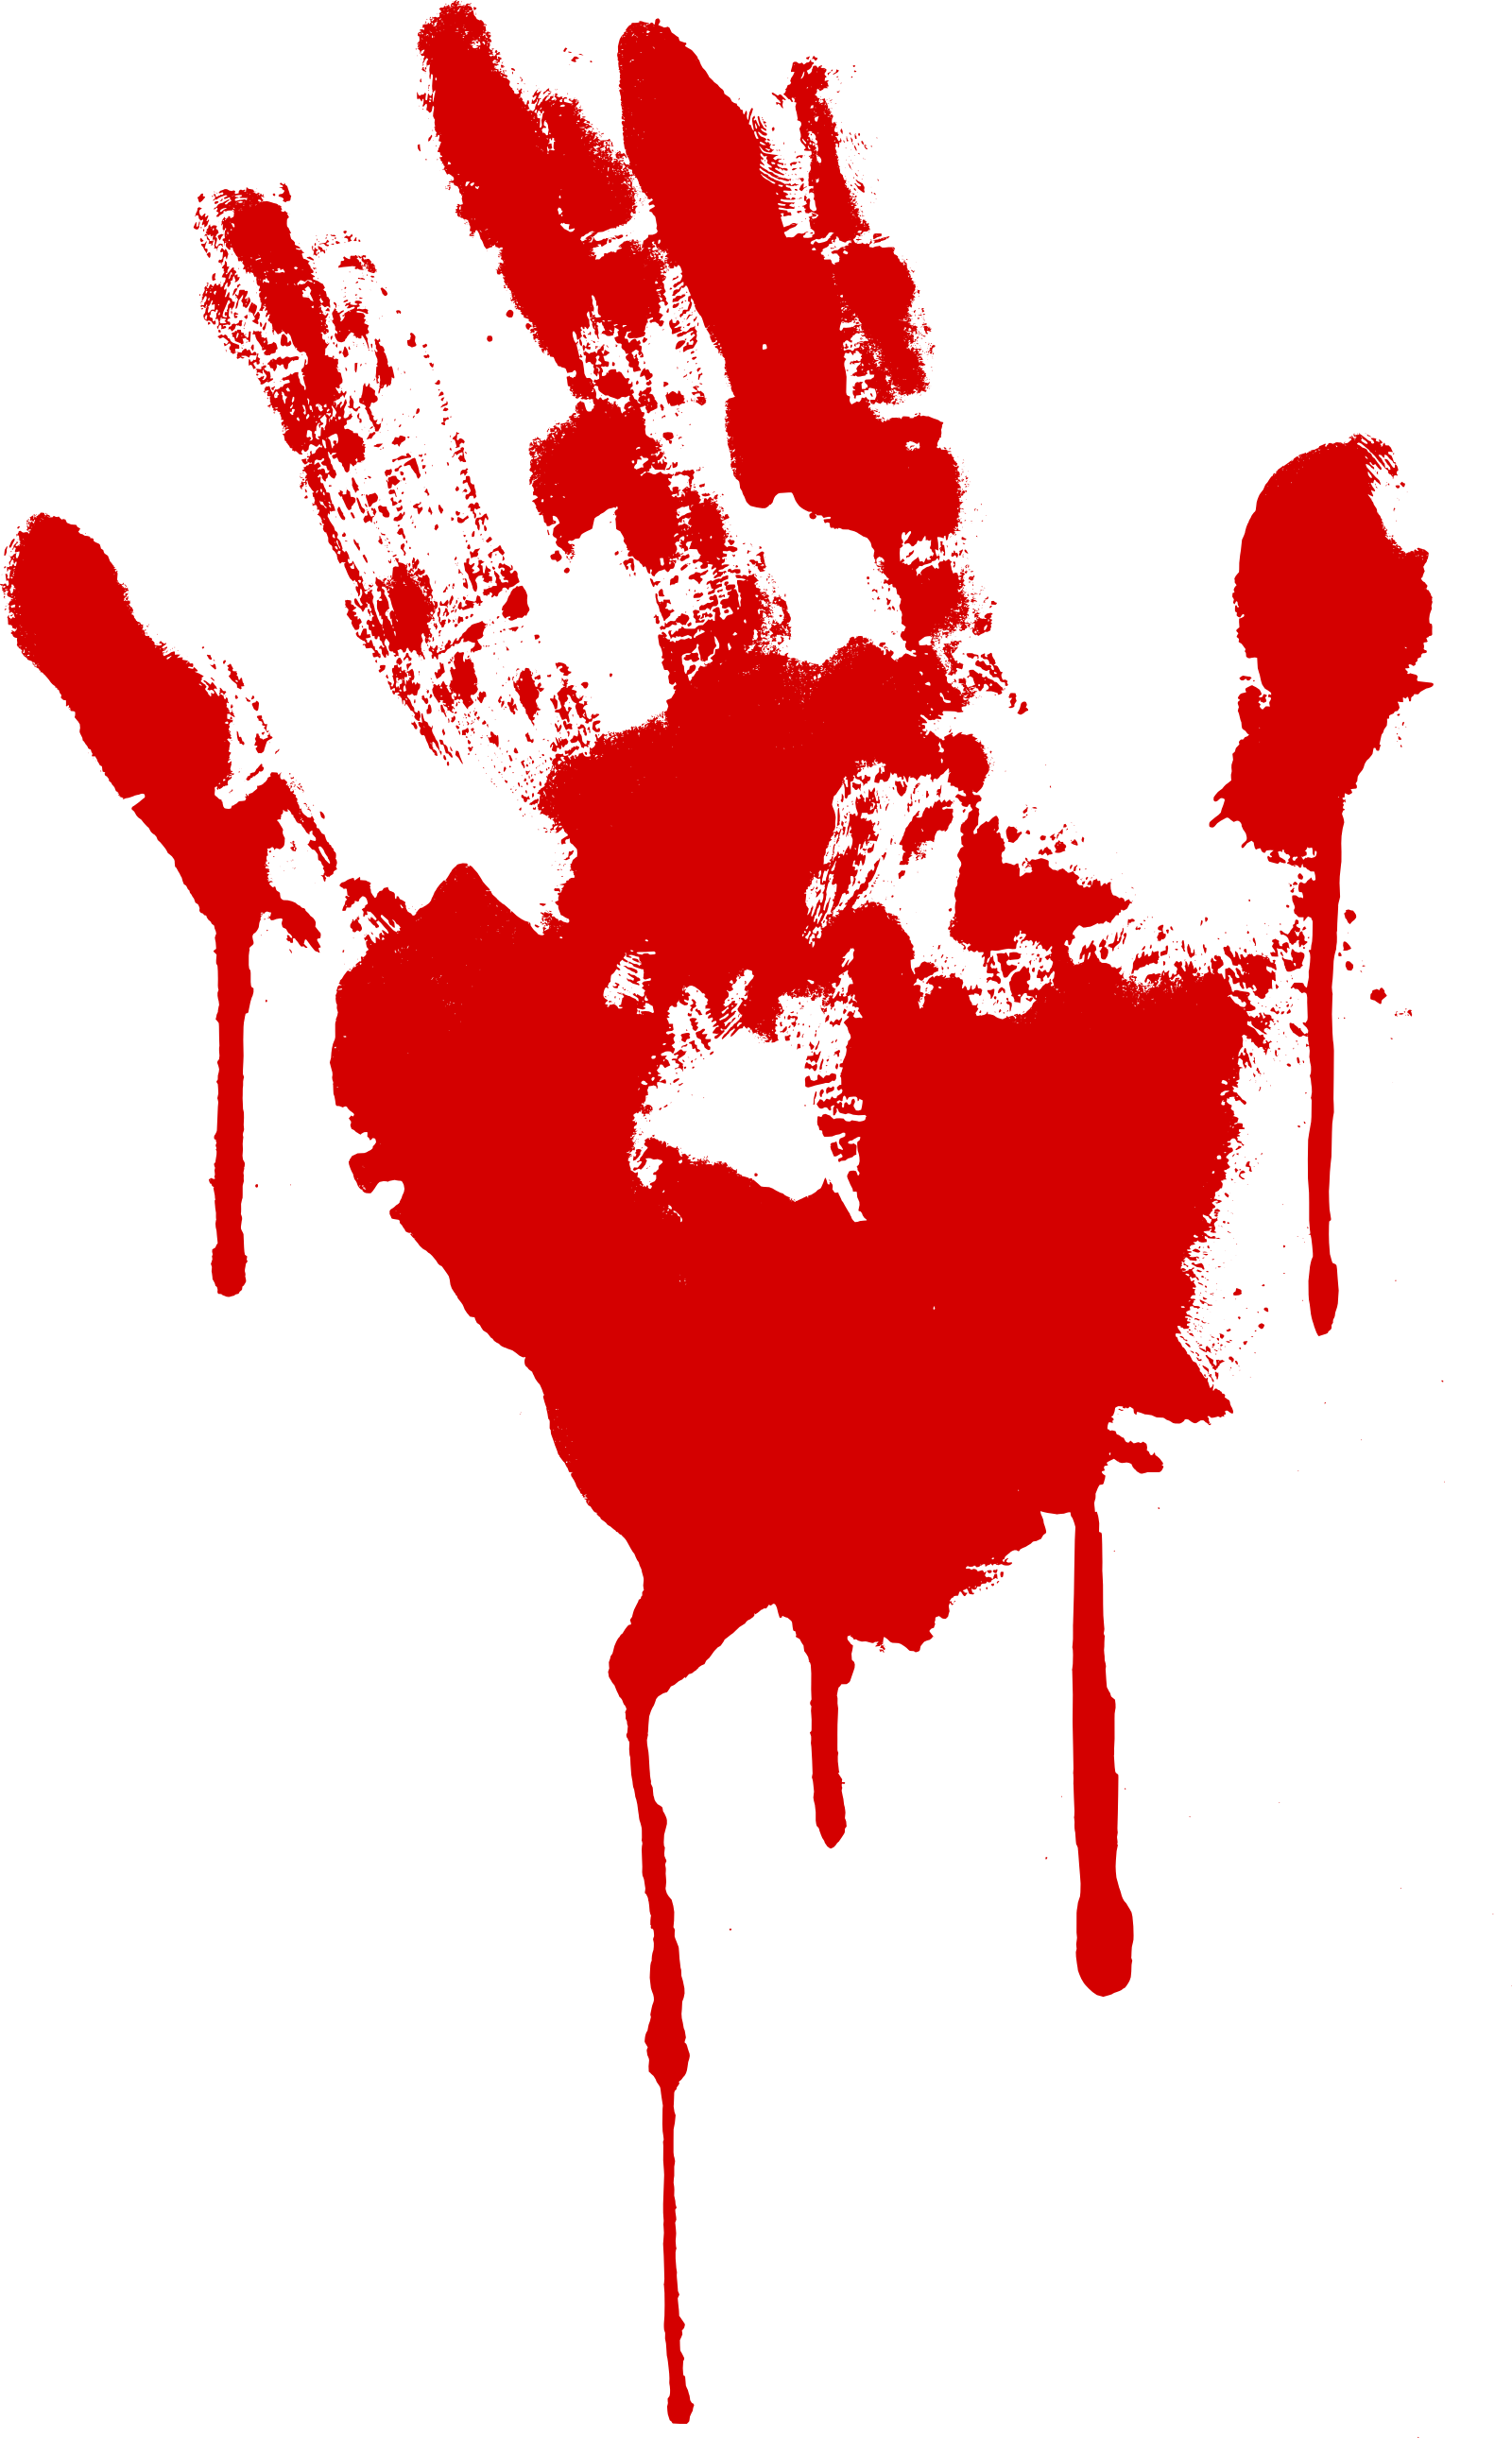 Bloody hand print png. Handprint transparent digital jpg library library